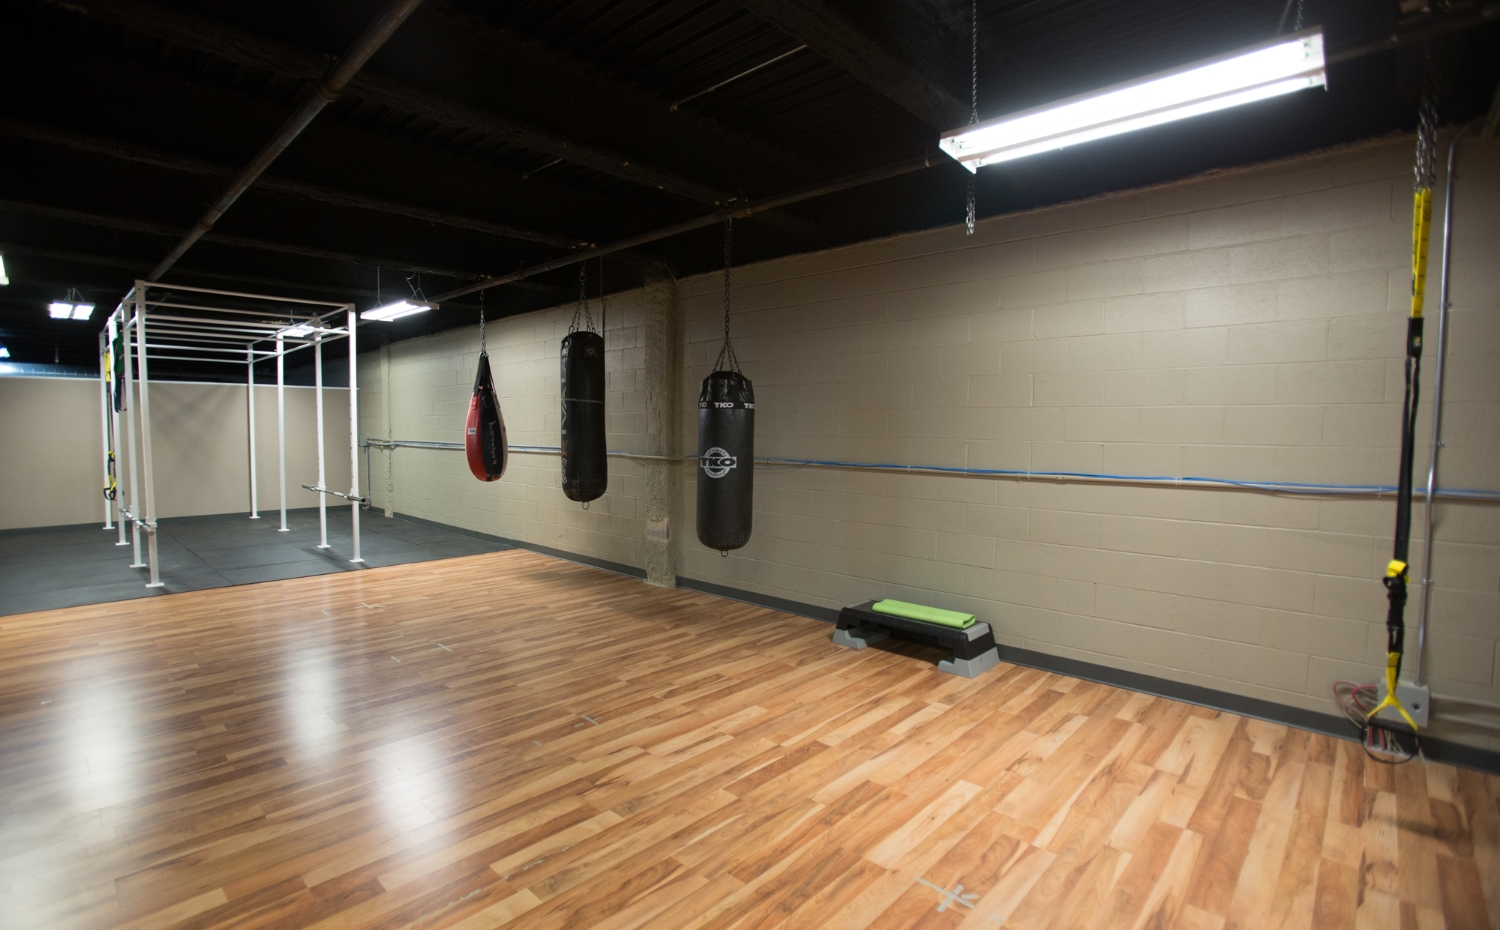 The upper level of our facility boasts a large area with punching bags, monkey bars and more!